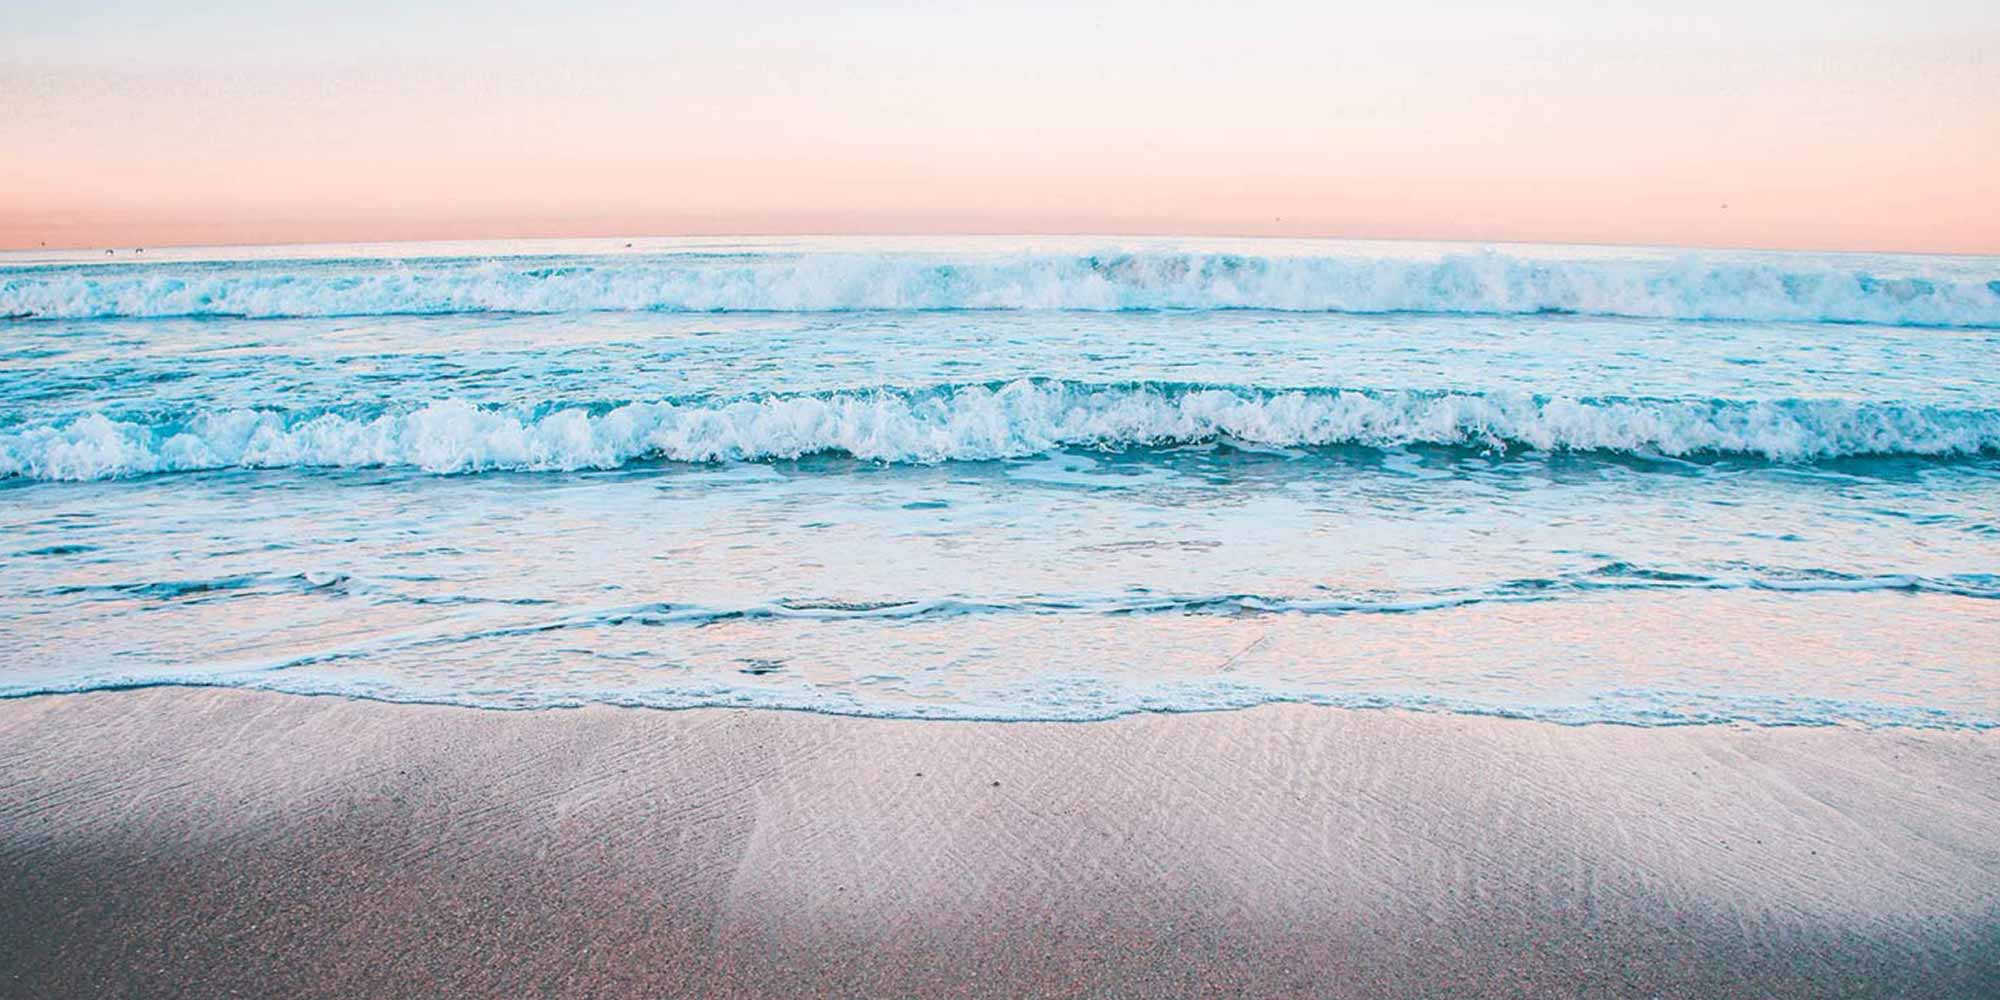 A peaceful beach at sunrise, with a pastel sky.